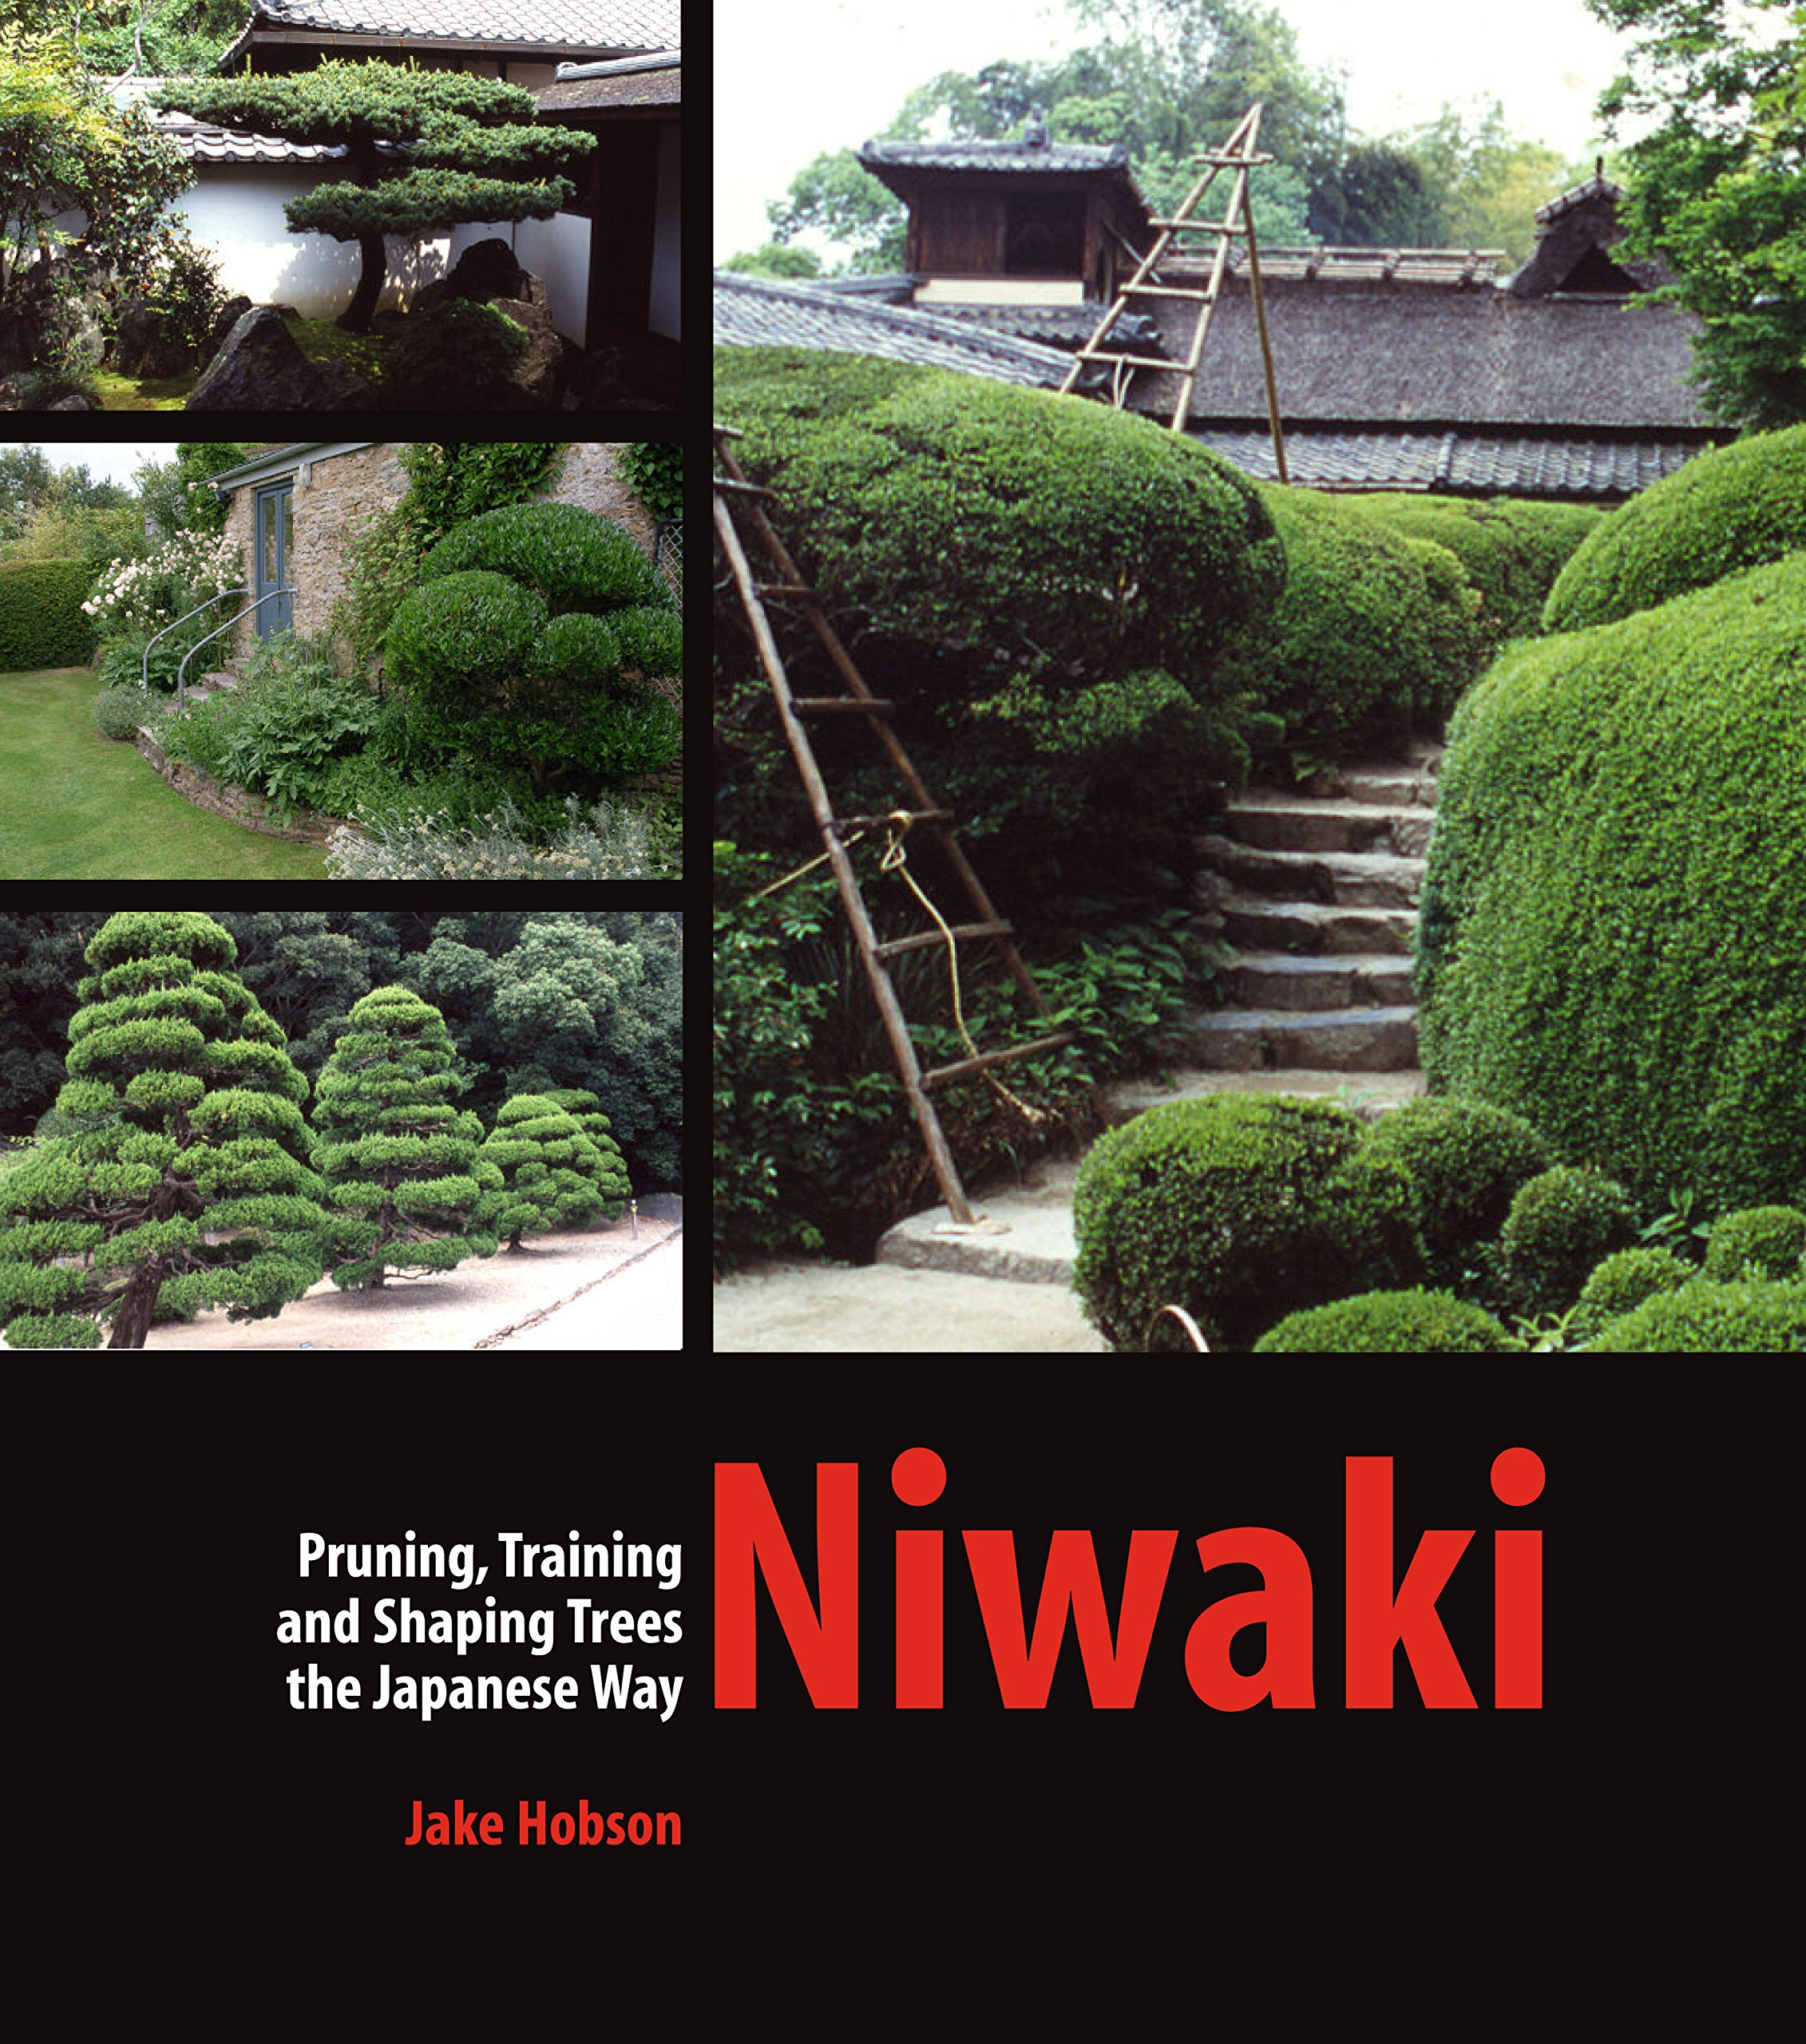 Niwaki Pruning Training And Shaping Trees The Japanese Way